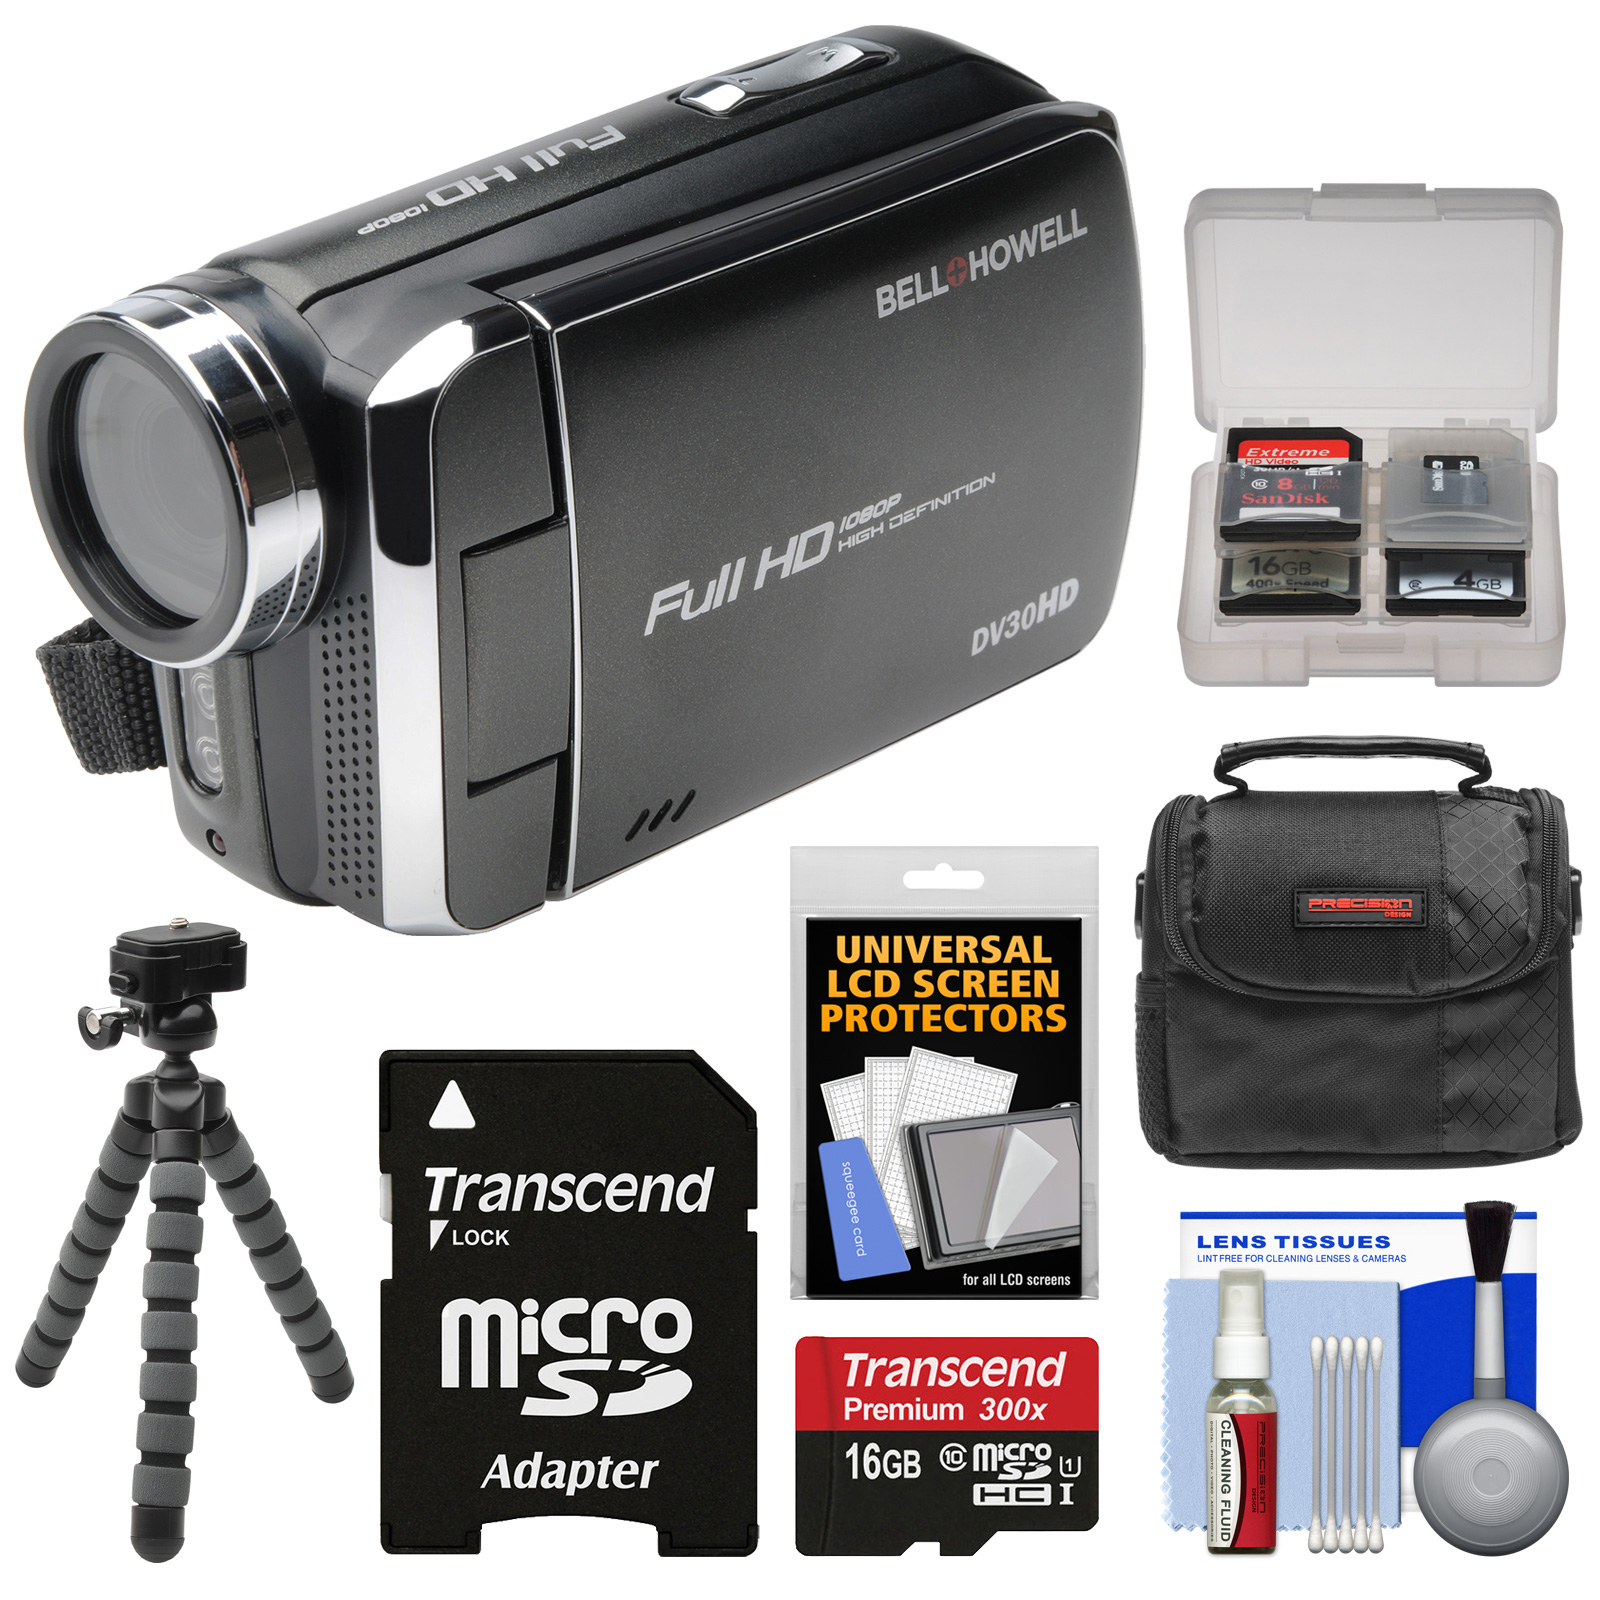 Bell & Howell DV30HD 1080p HD Video Camera Camcorder (Black) with 16GB Card + Case + Flex Tripod + Kit by Bell %2B Howell